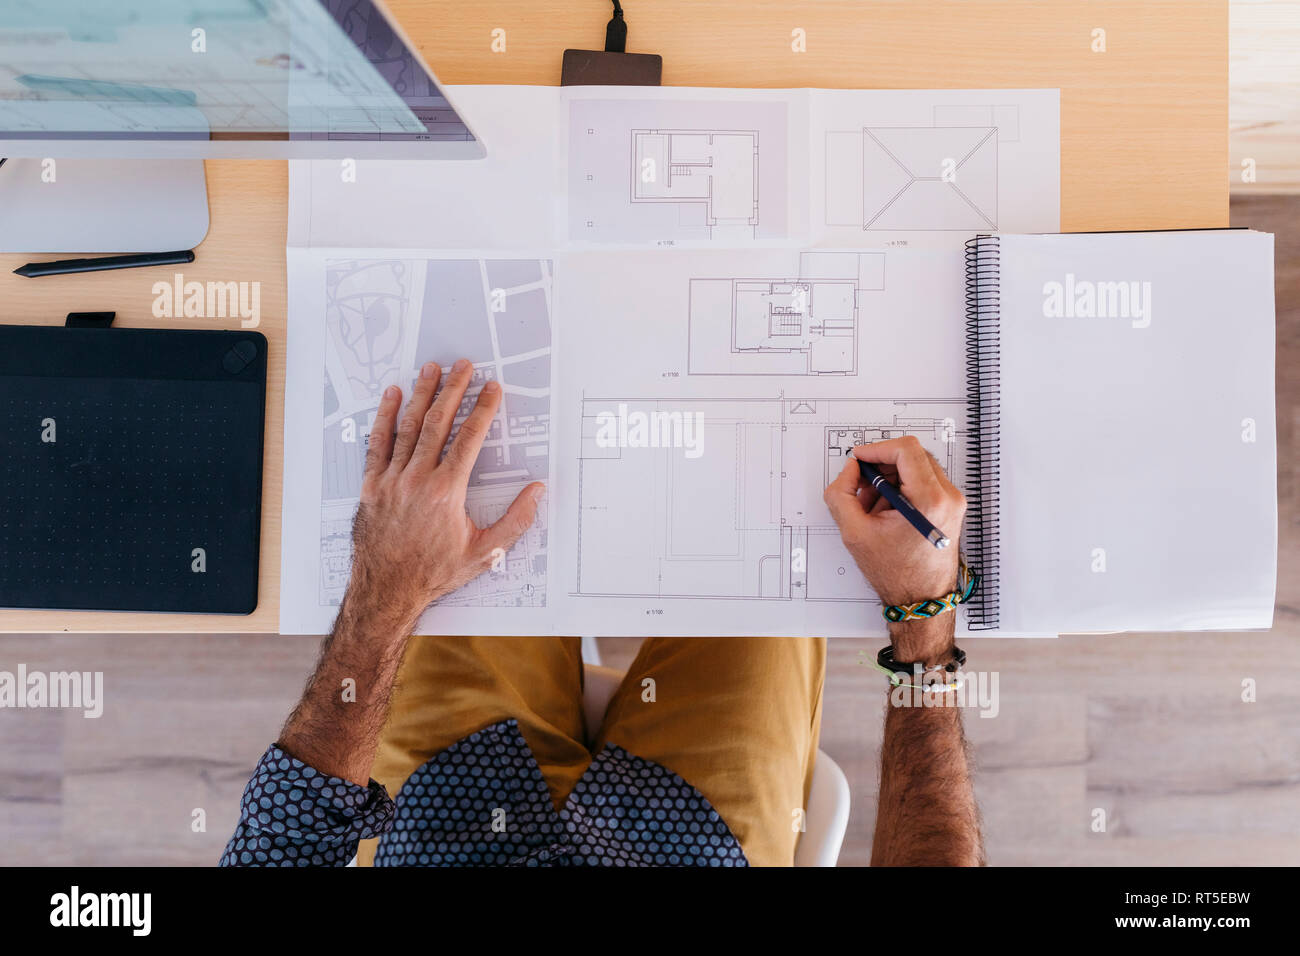 Close-up of architect working at home on floor plan - Stock Image